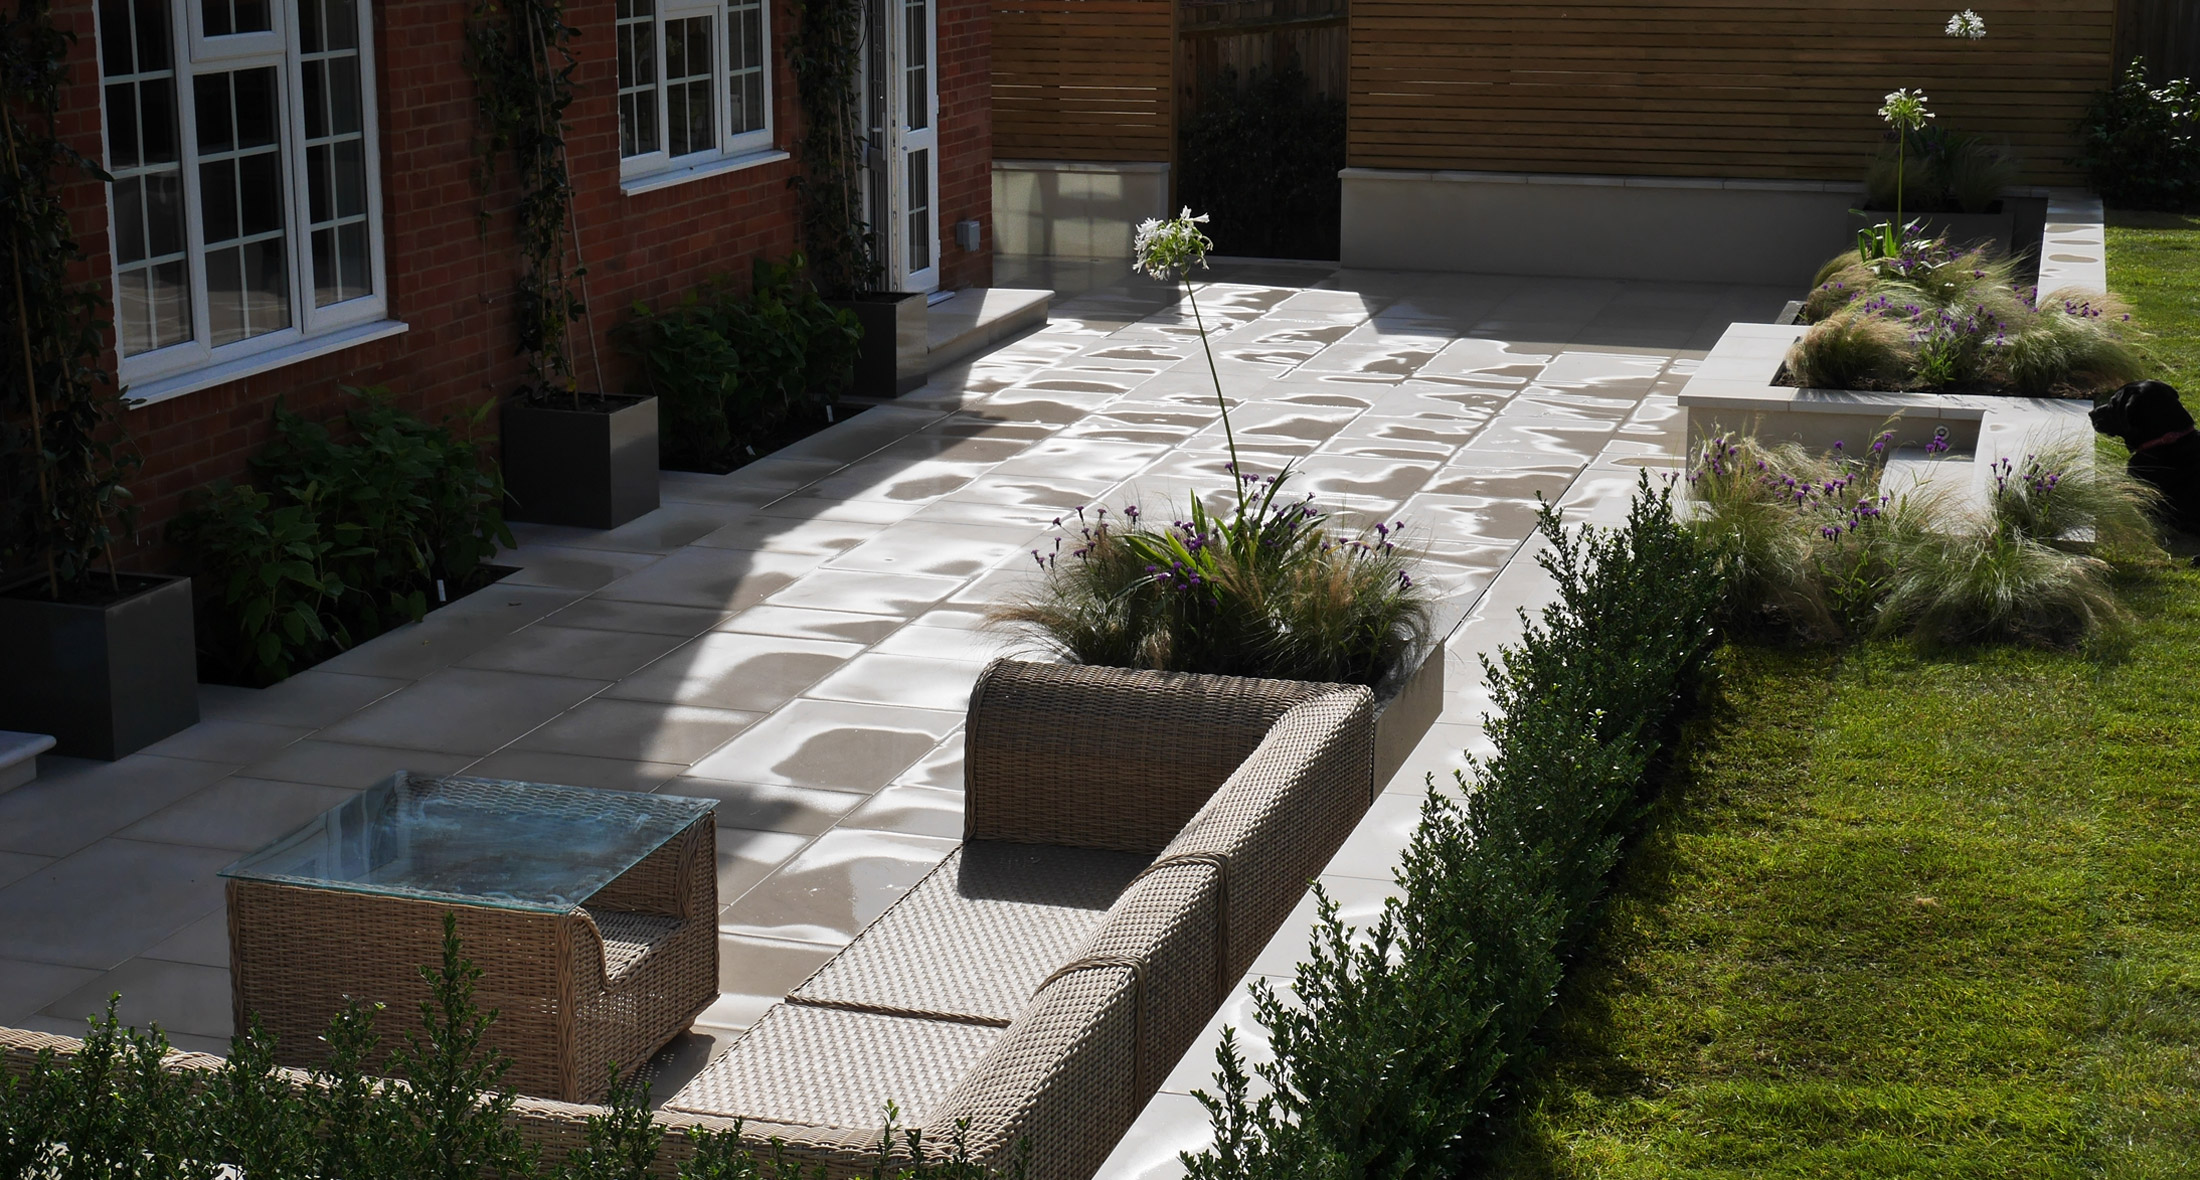 a slate grey garden design and landscaping patio with sleek grey paving and surrounding raised planting